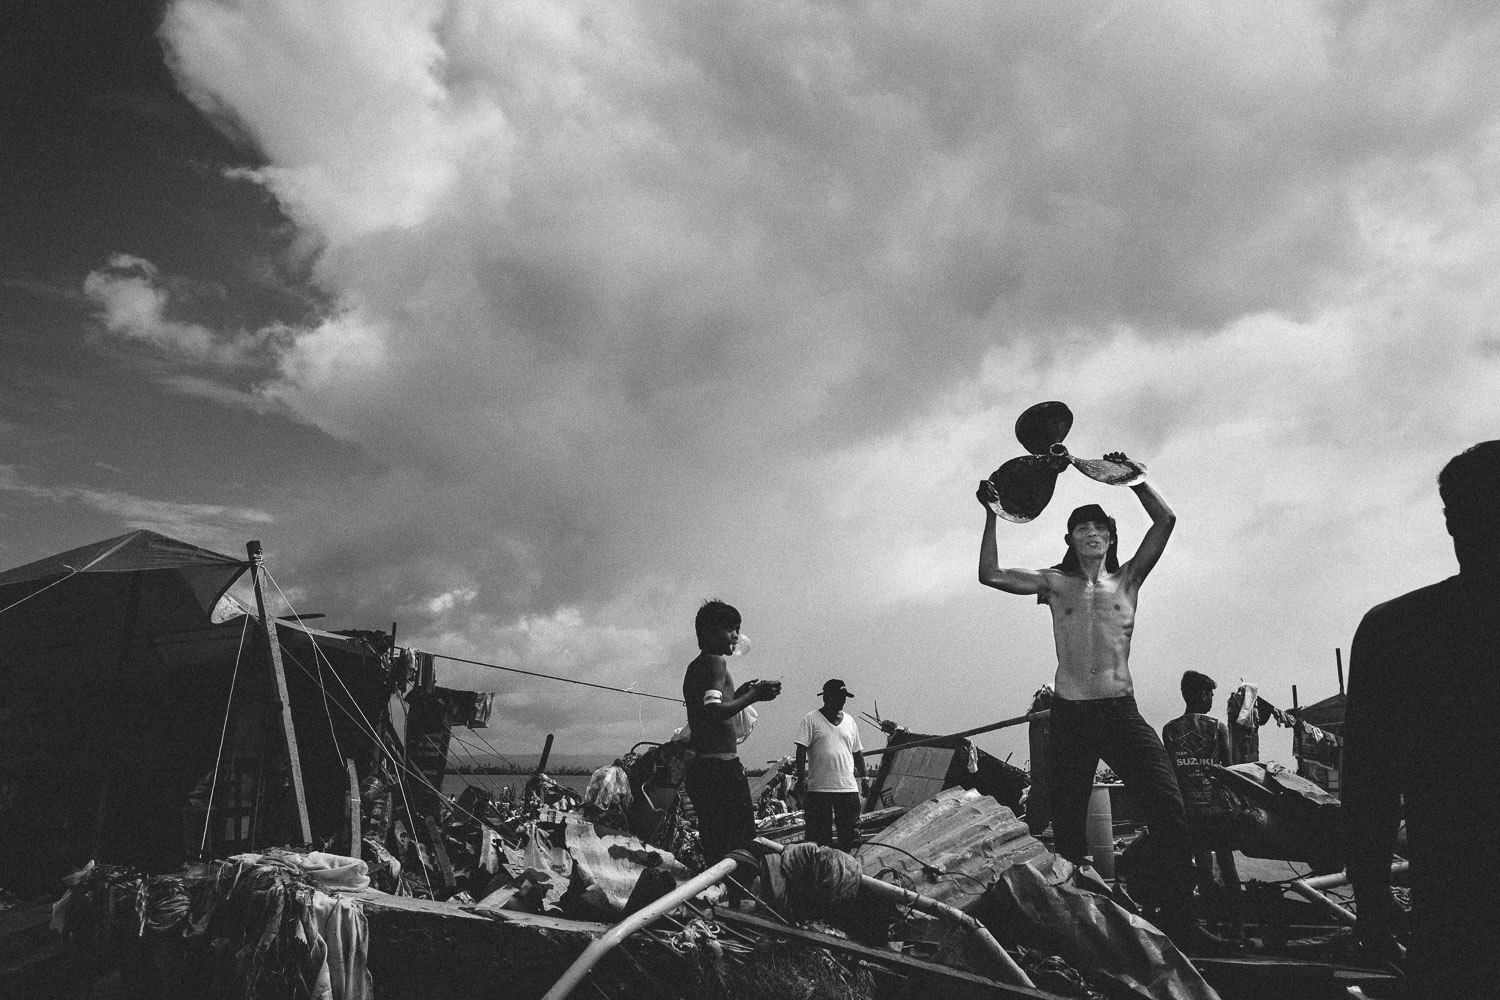 Tacloban City. A team of young men carry out the remains of a boat, piece by piece. The propeller is raised as the last and triumphant piece, before the team rush off on an open pickup truck.